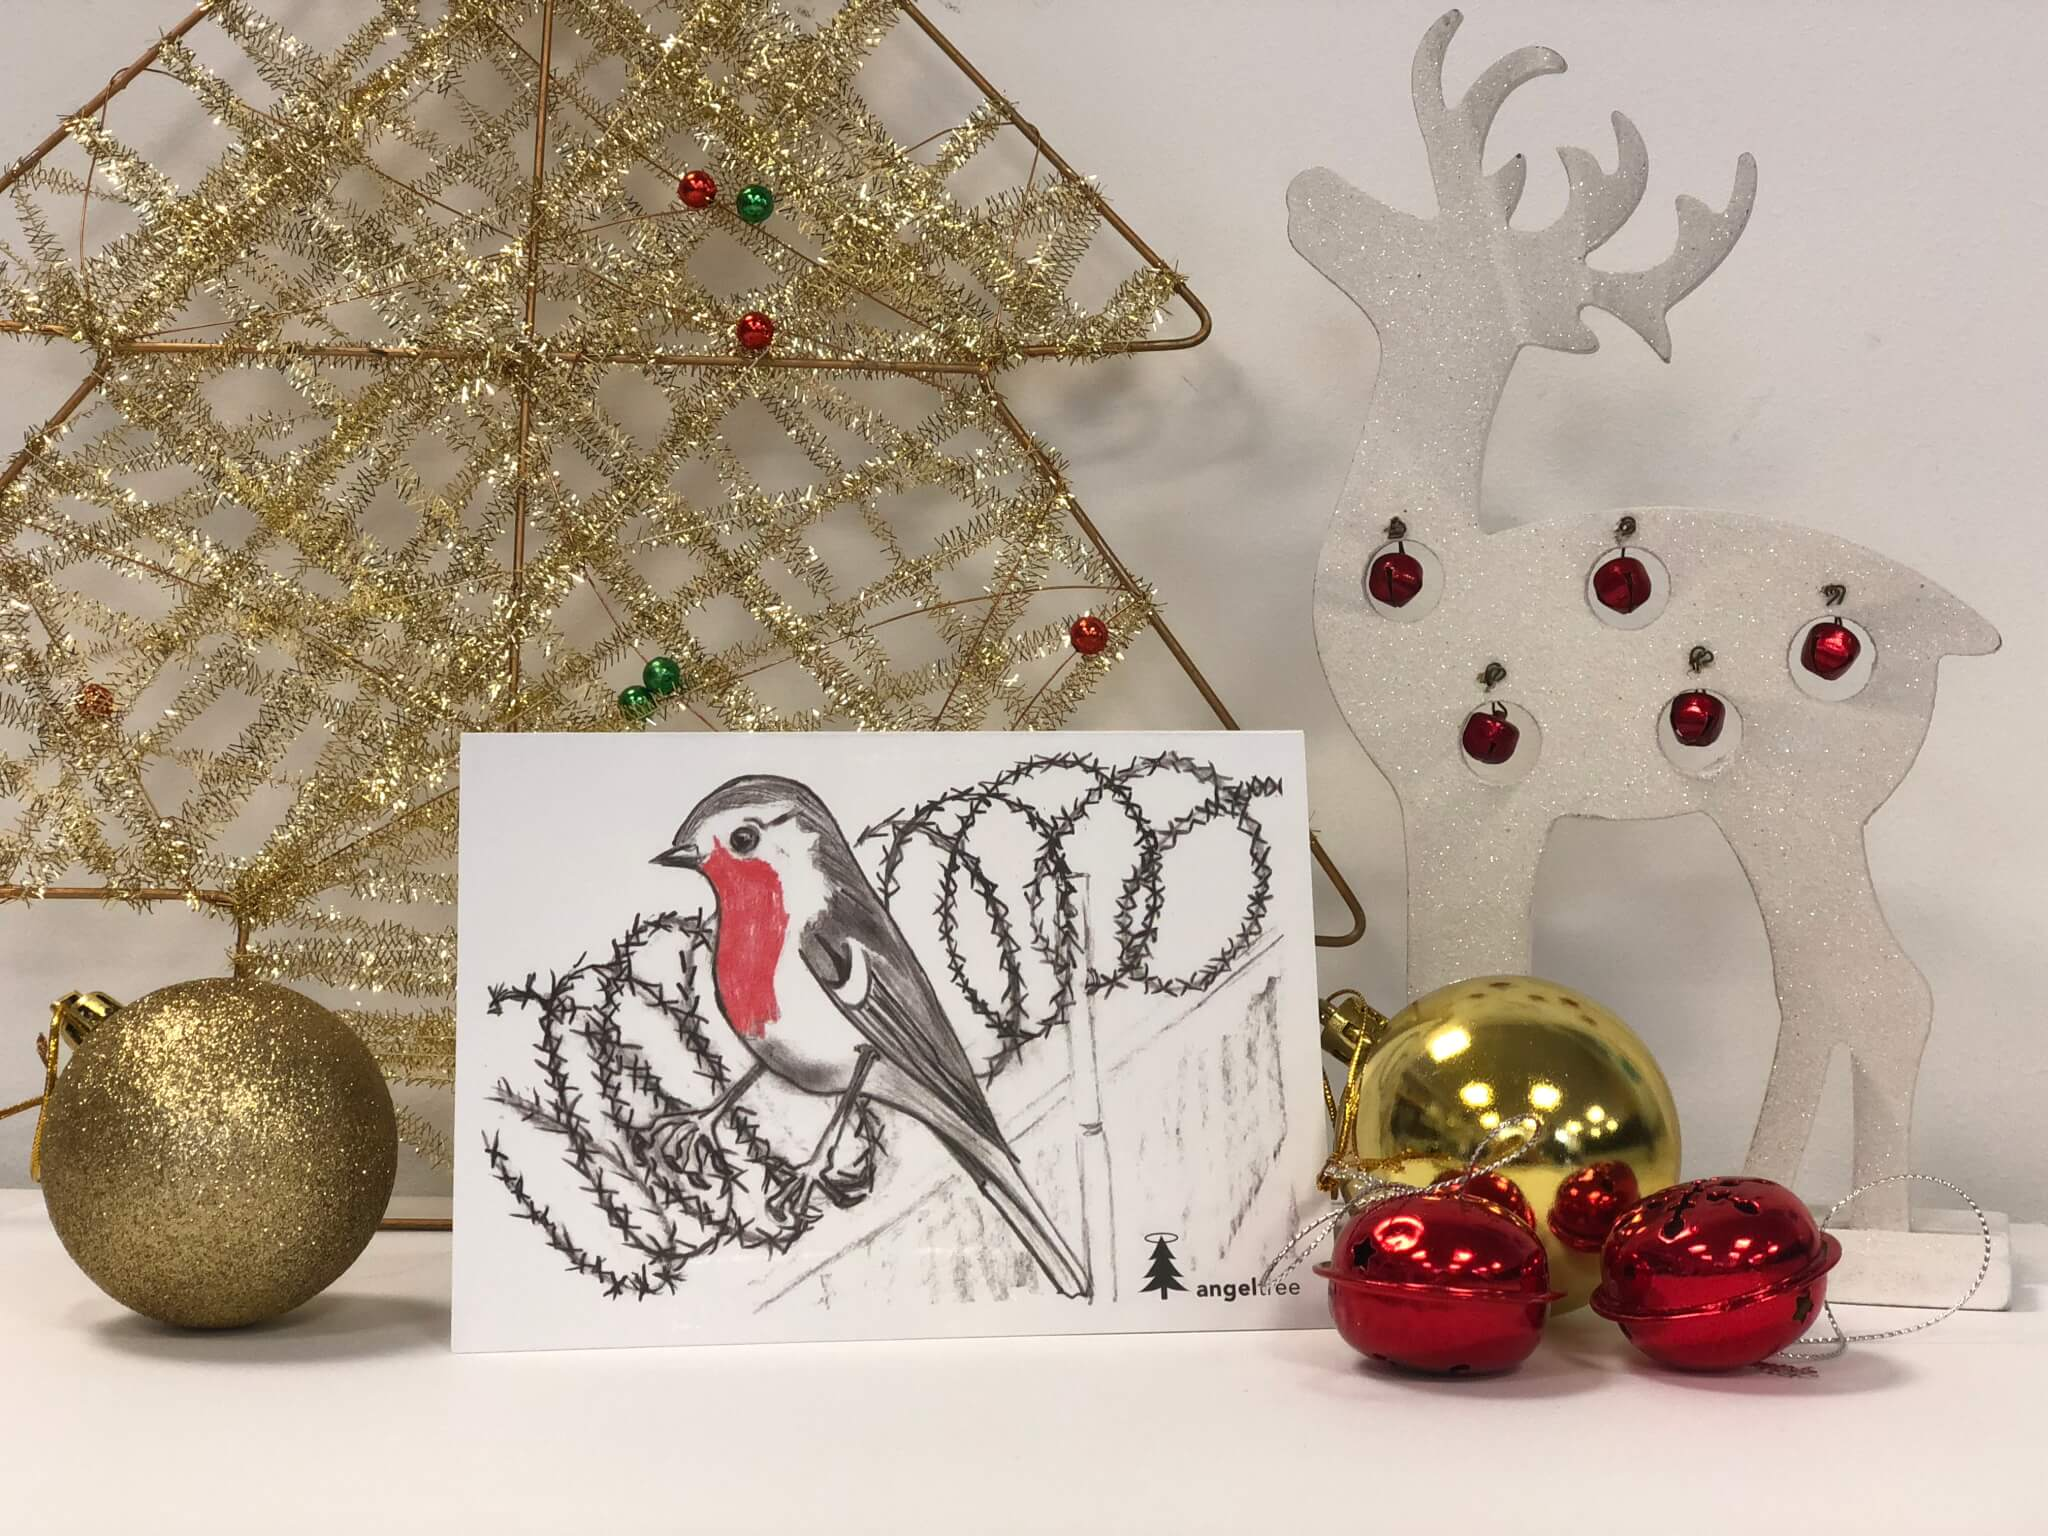 PF Christmas card for 2018 - featuring a robin sitting on barbed wire